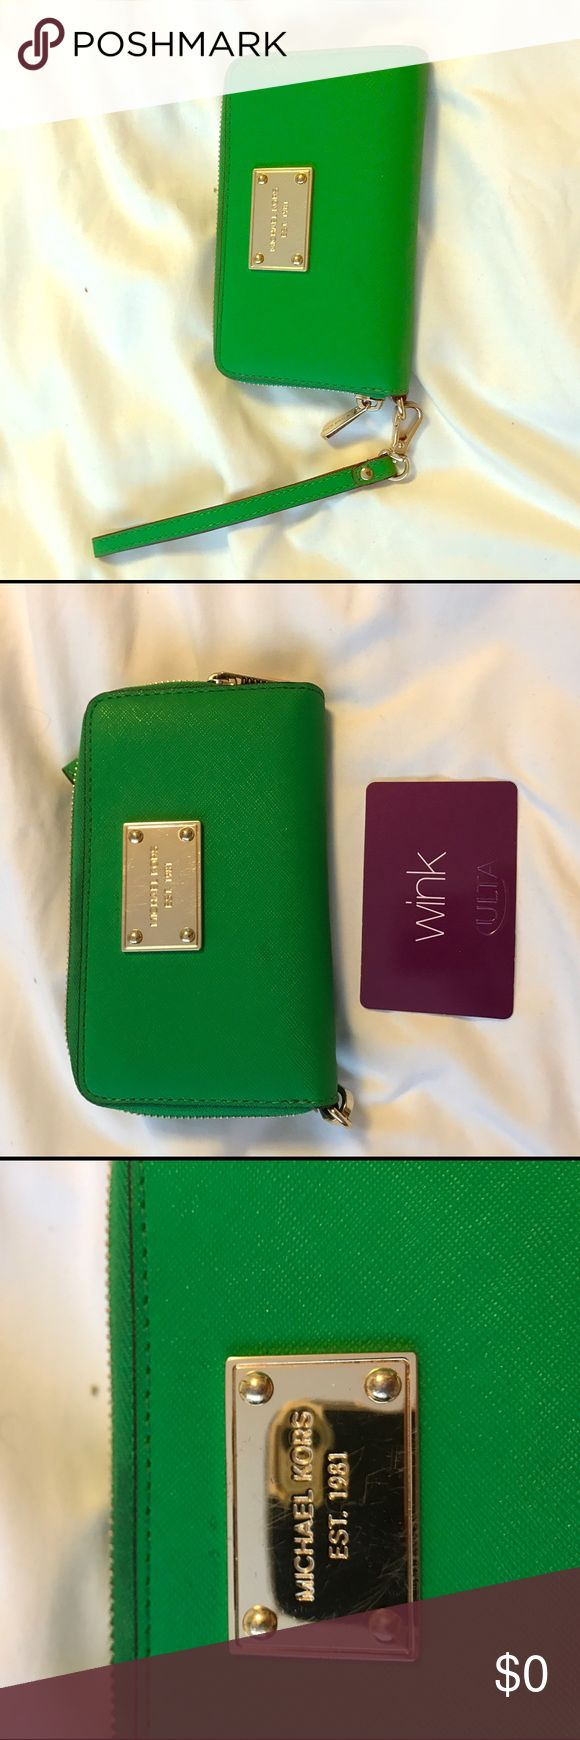 Michael Kors leather wristlet green Authentic, gently used. Slight scuffing on gold hardware but only noticeable upon close inspection.  3 credit card slots, room for bills, zipped coins, and phone (iPhone 6 & 7 fit, not the plus). Shown next to gift card to show how much bigger than a credit card the wristlet is. Has a wrist strap. Feel free to make an offer Michael Kors Bags Clutches & Wristlets